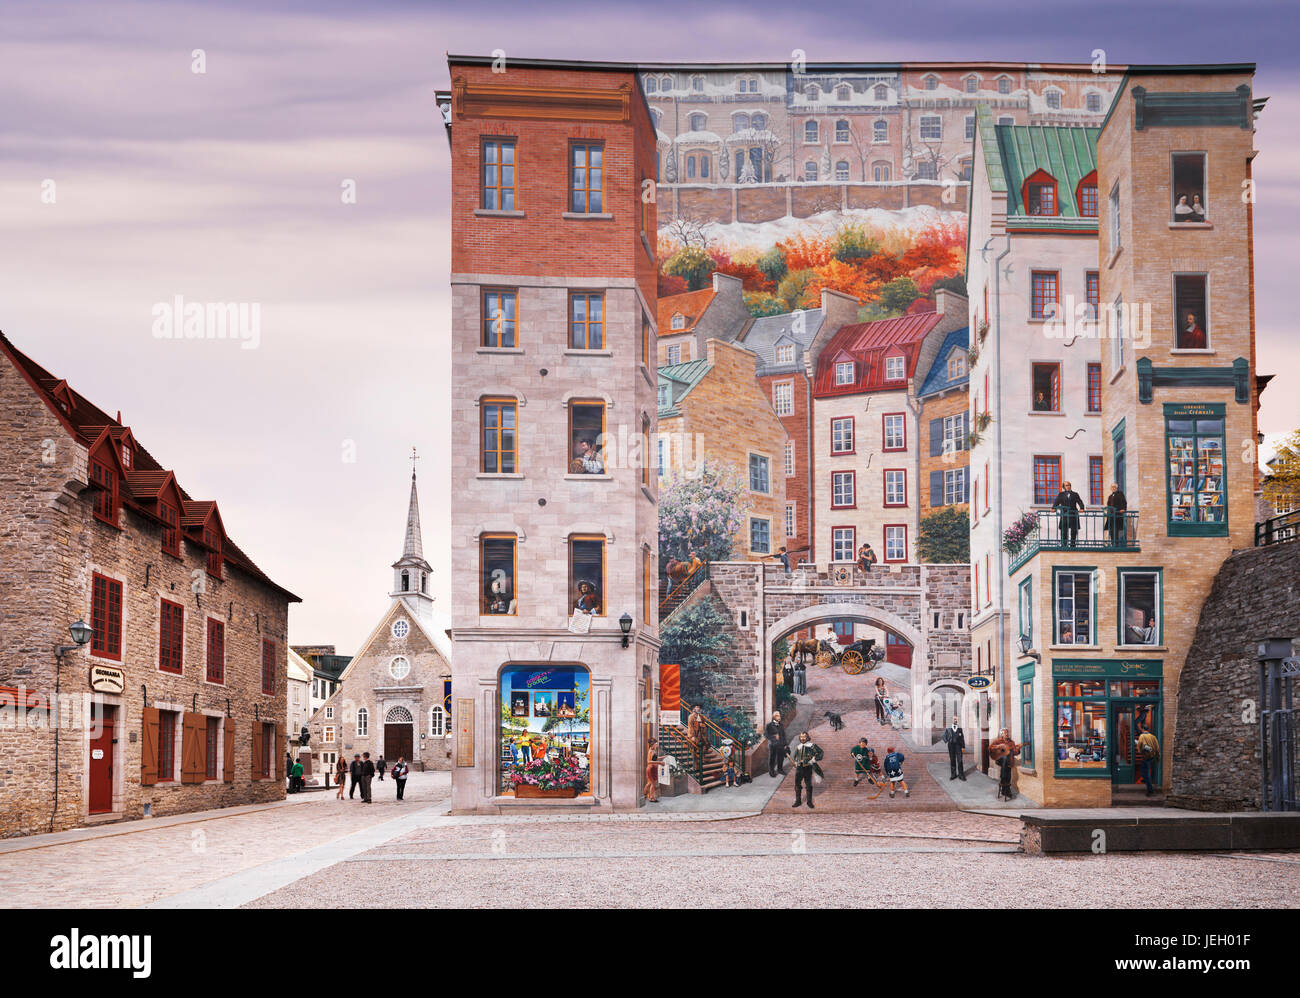 High Quality Wall Mural Fresco With Quebec History, Notre Dame Street, Old Quebec City,  Quebec, Canada